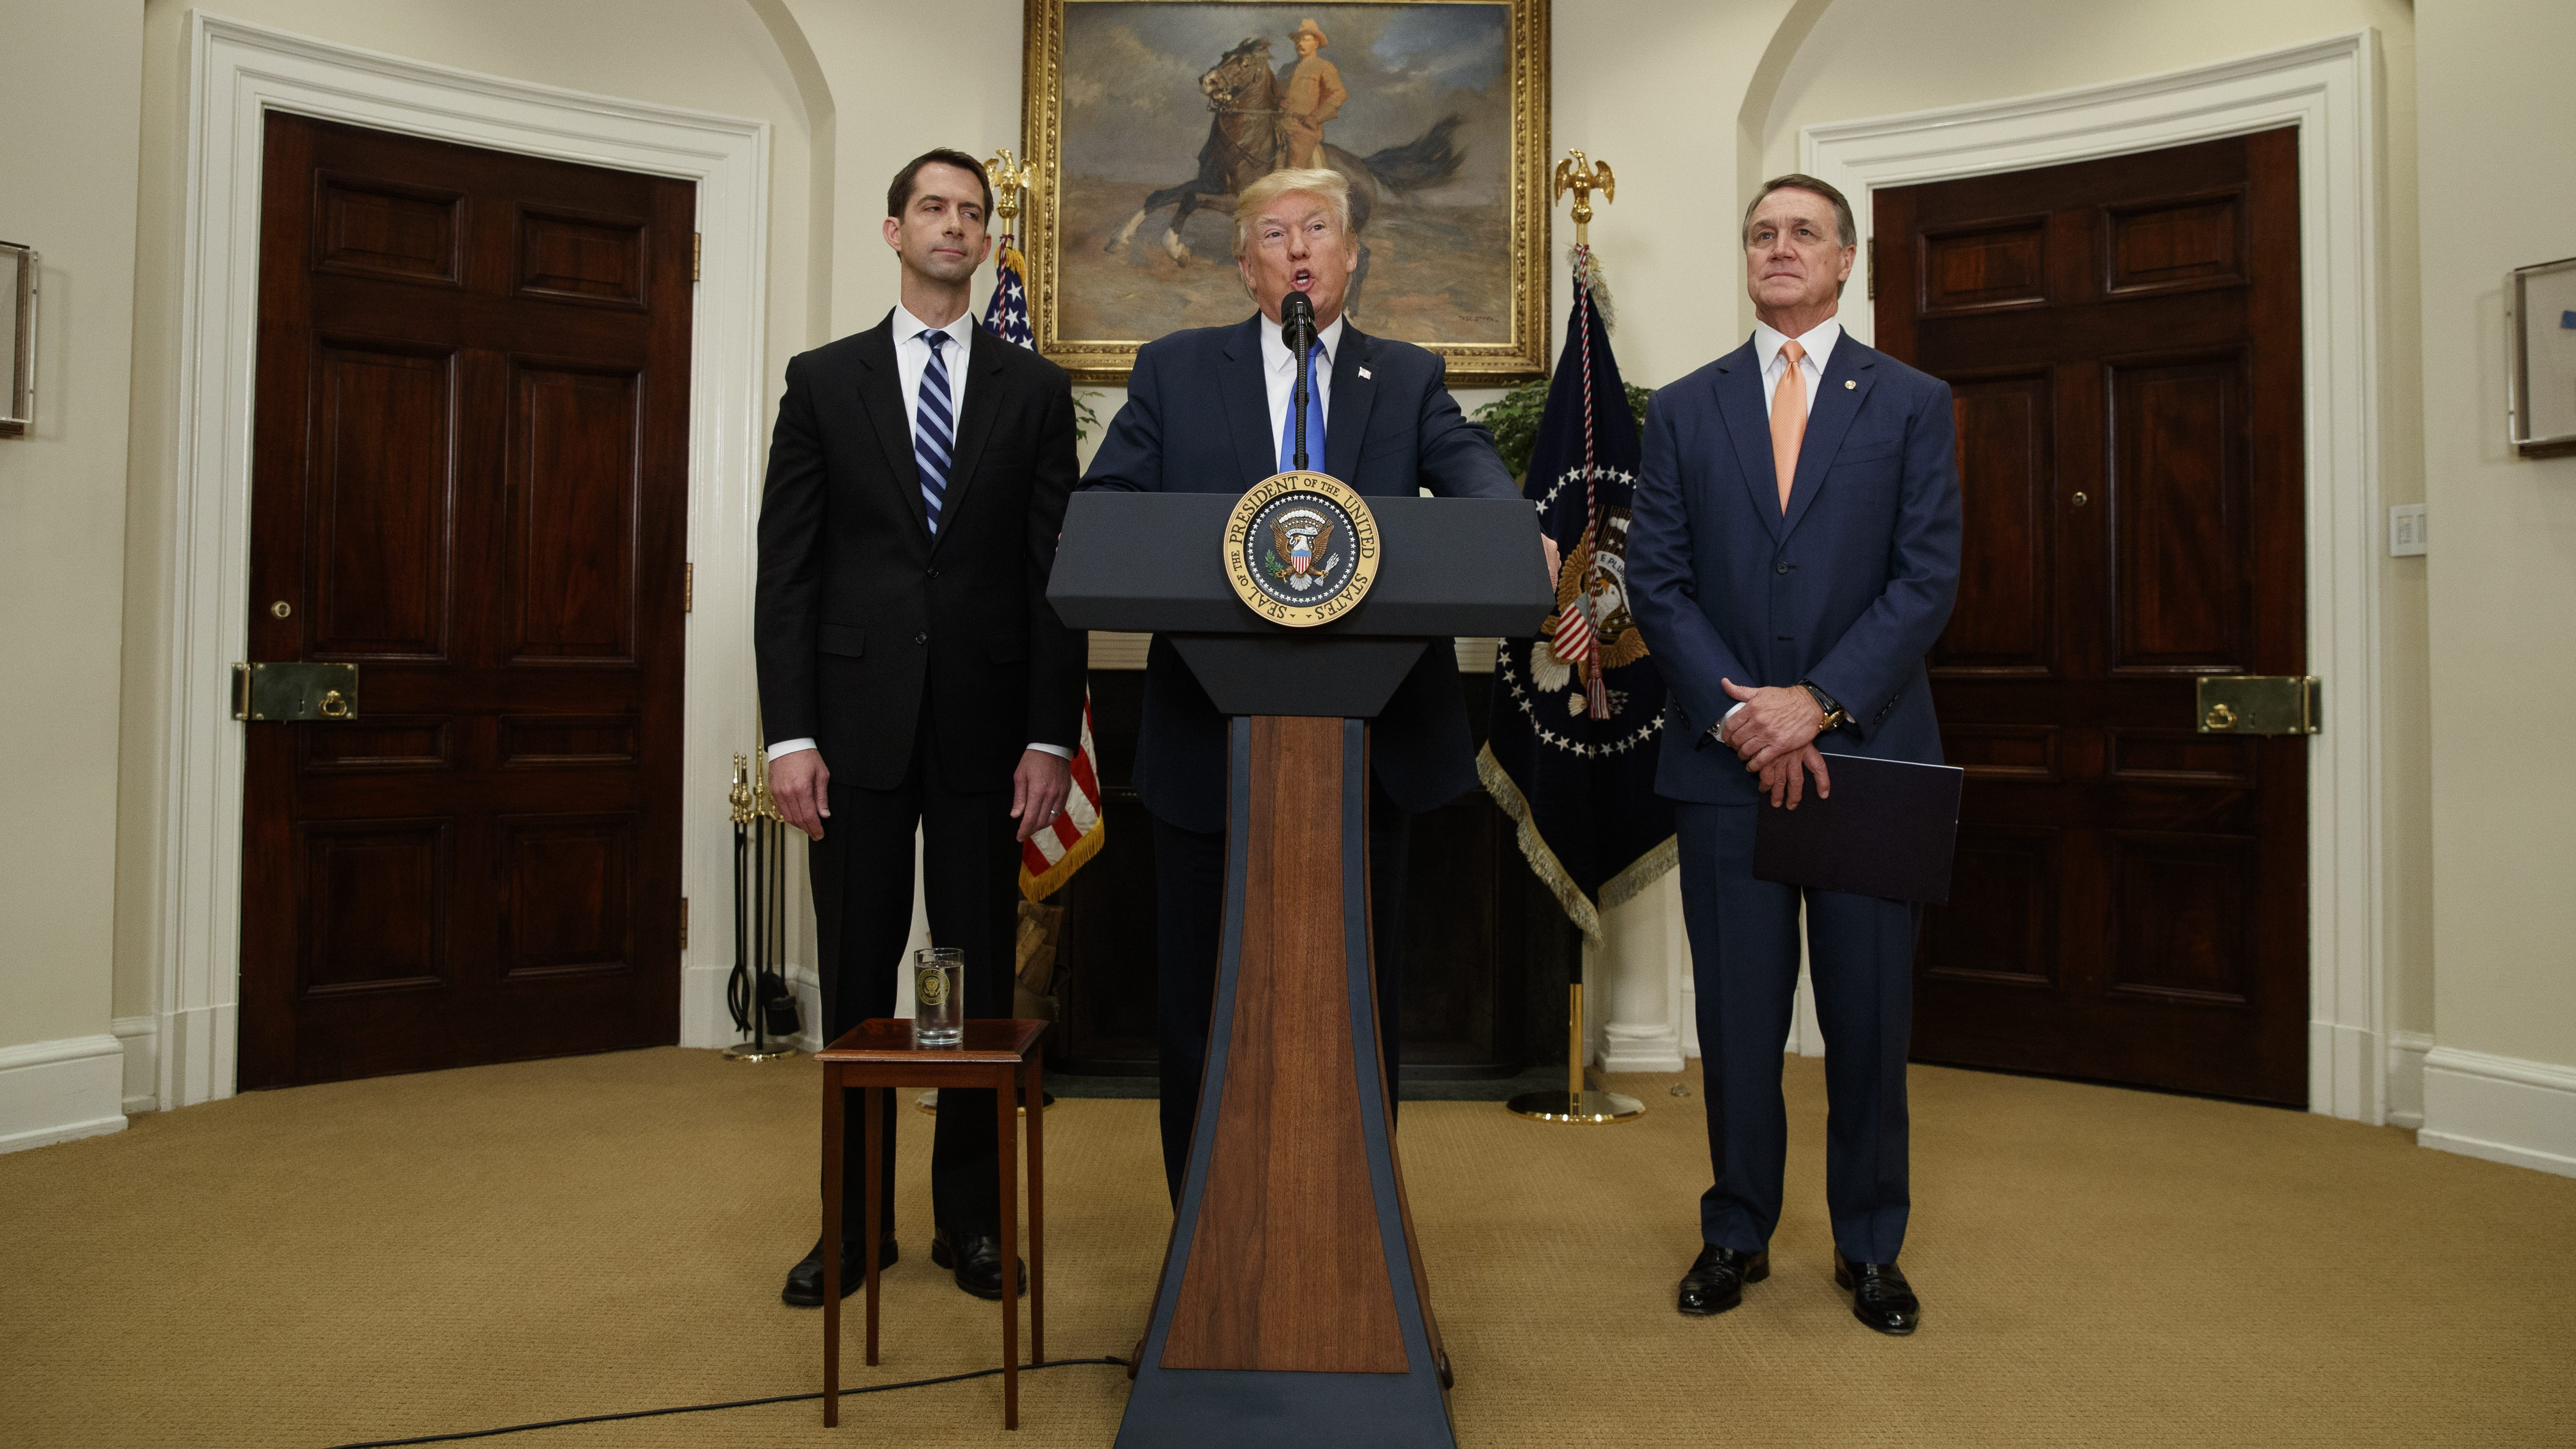 President Donald Trump, flanked by Sen. Tom Cotton, R- Ark., left, and Sen. David Perdue, R-Ga., speaks in the Roosevelt Room of the White House in Washington, Wednesday, Aug. 2, 2017, during the unveiling of legislation that would place new limits on legal immigration. (AP Photo/Evan Vucci)